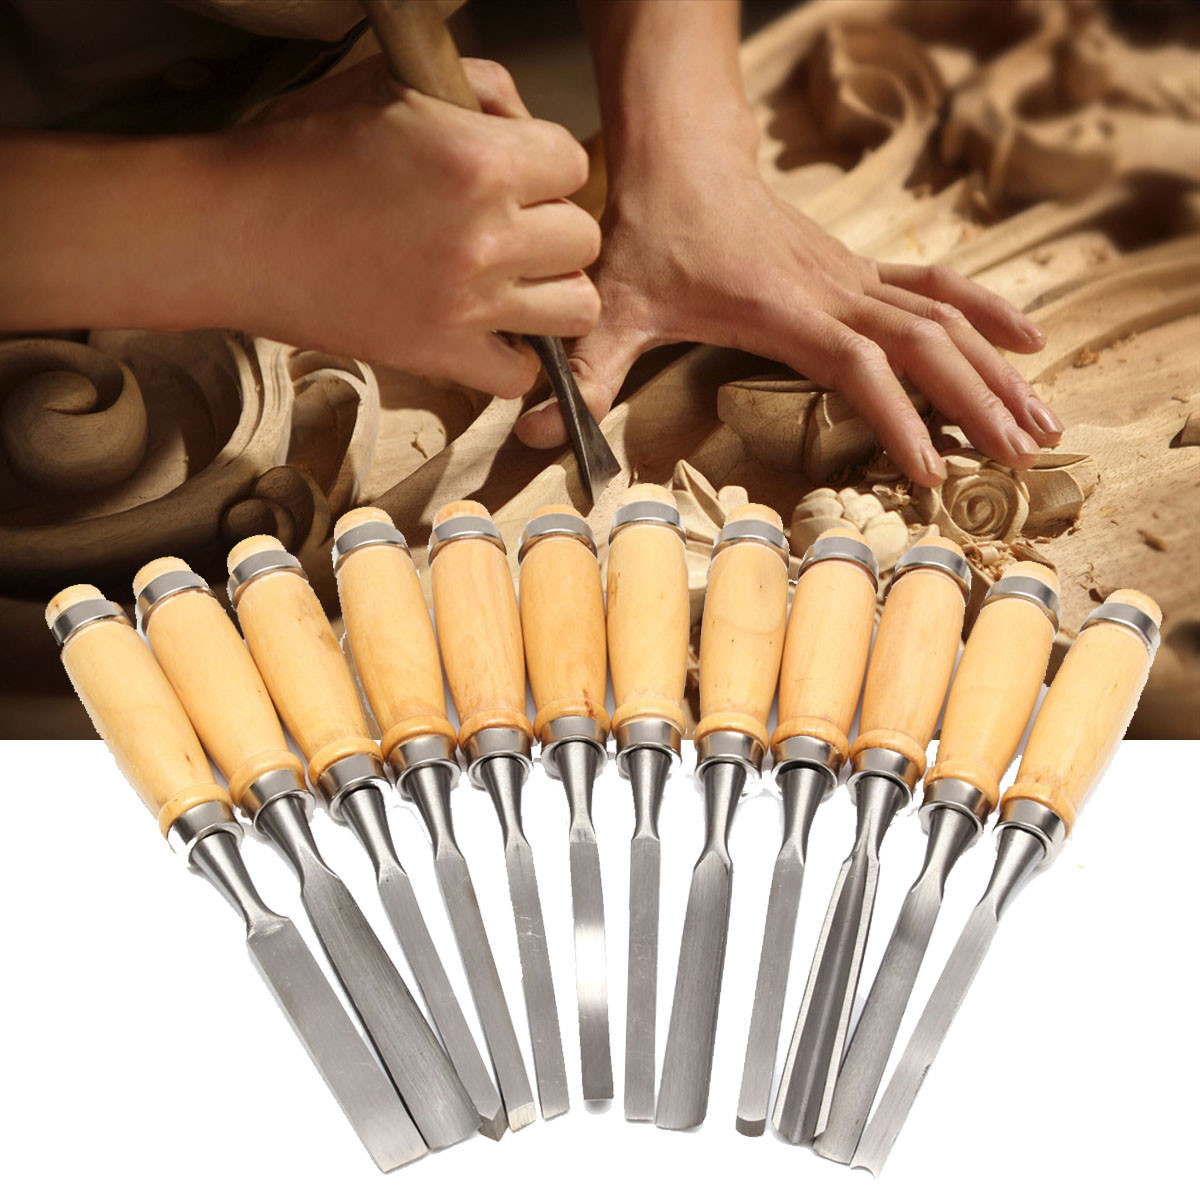 12pcs/set Wood Carving Hand Chisel Tool Set Wood Carving Chisels Knife for Basic Woodcut Polishing Carving Chisels Tools цены онлайн